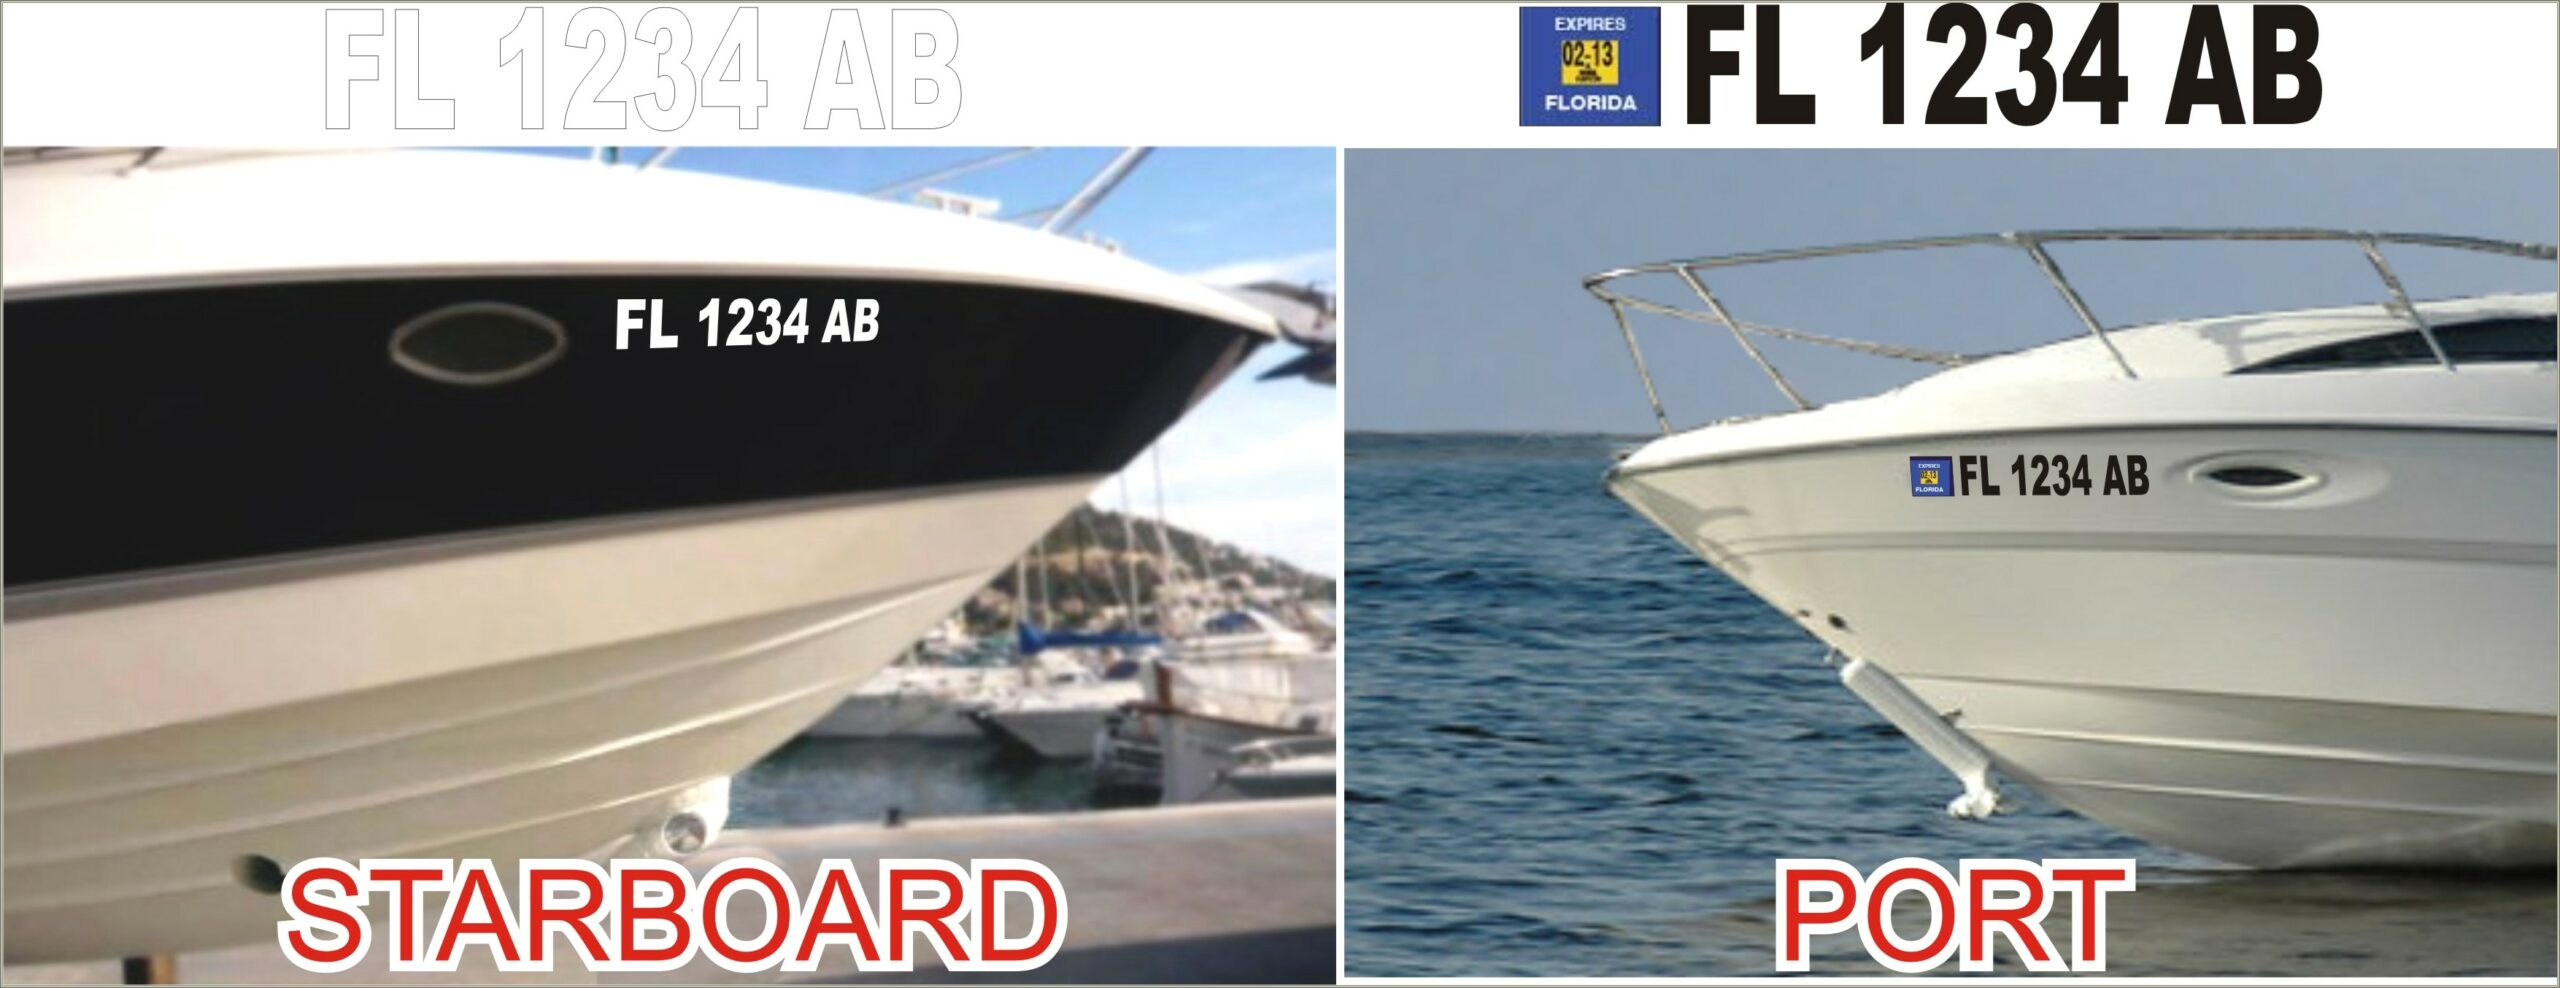 Florida Boat Lettering Requirements